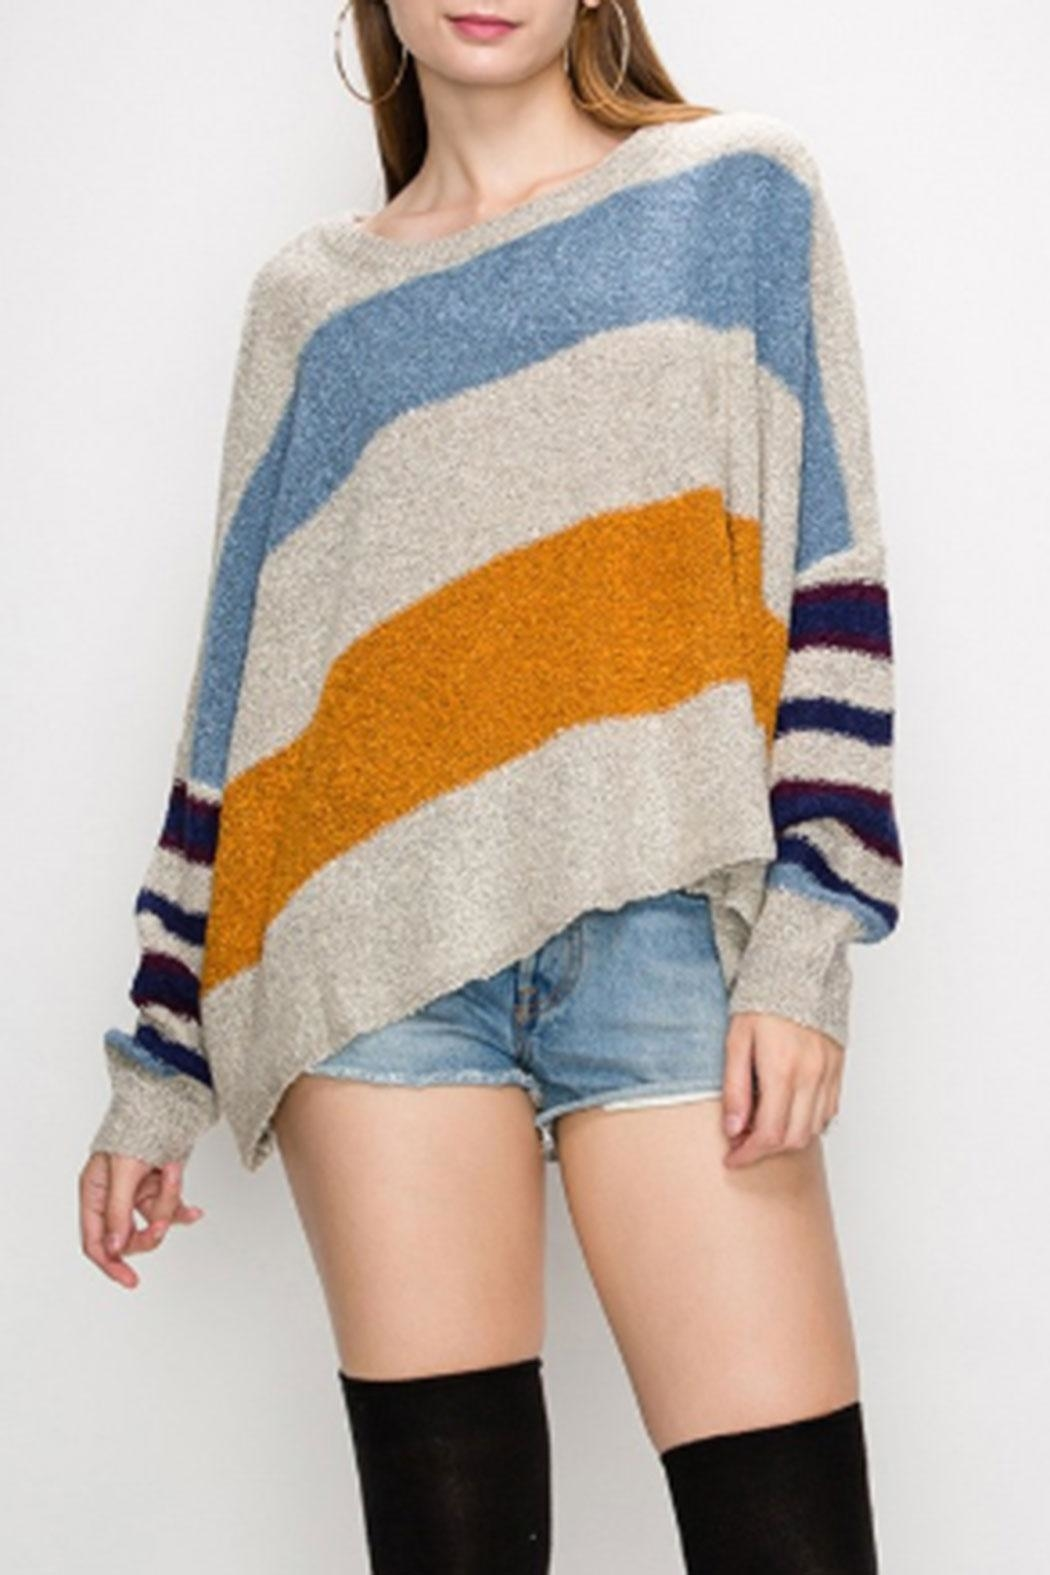 HYFVE Multi-Color Striped Sweater - Main Image